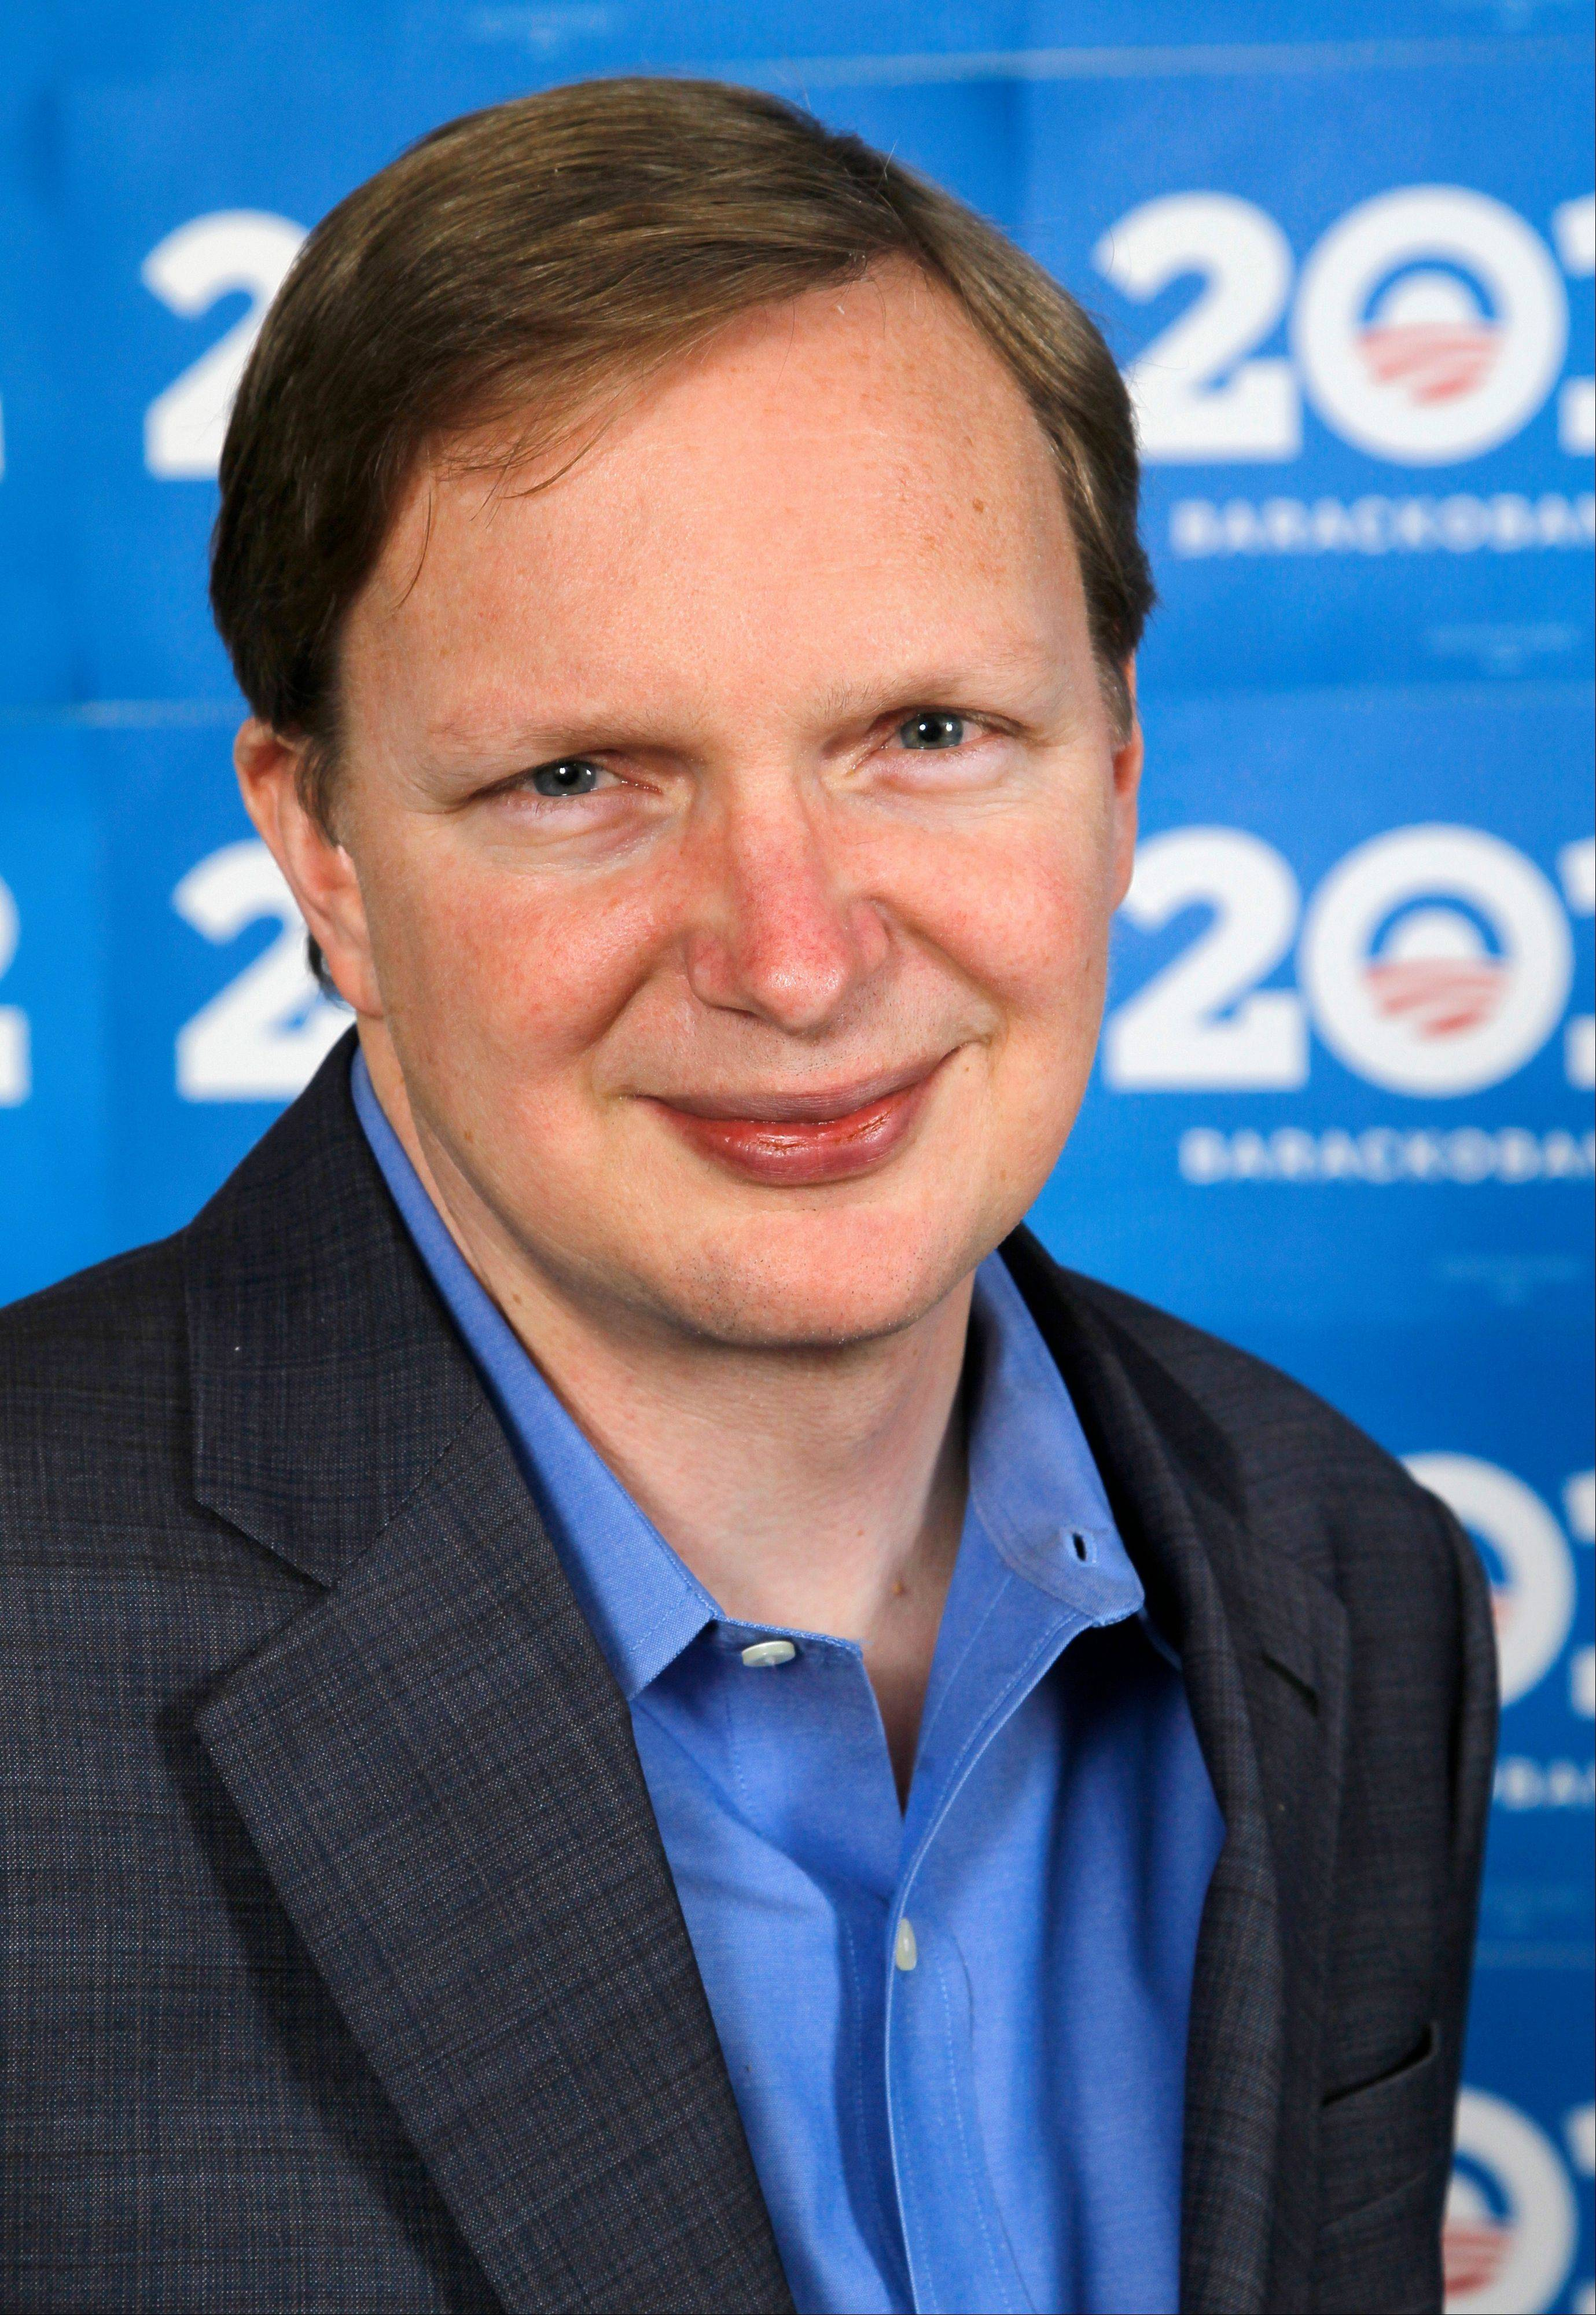 This photo taken Dec. 28, 2011, shows Obama 2012 campaign manager Jim Messina at the campaign headquarters in Chicago. Messina, who was David Plouffe's former deputy during the 2008 campaign, has likened the re-election headquarters to a Silicon Valley startup company, demanding metrics and results from his aides.